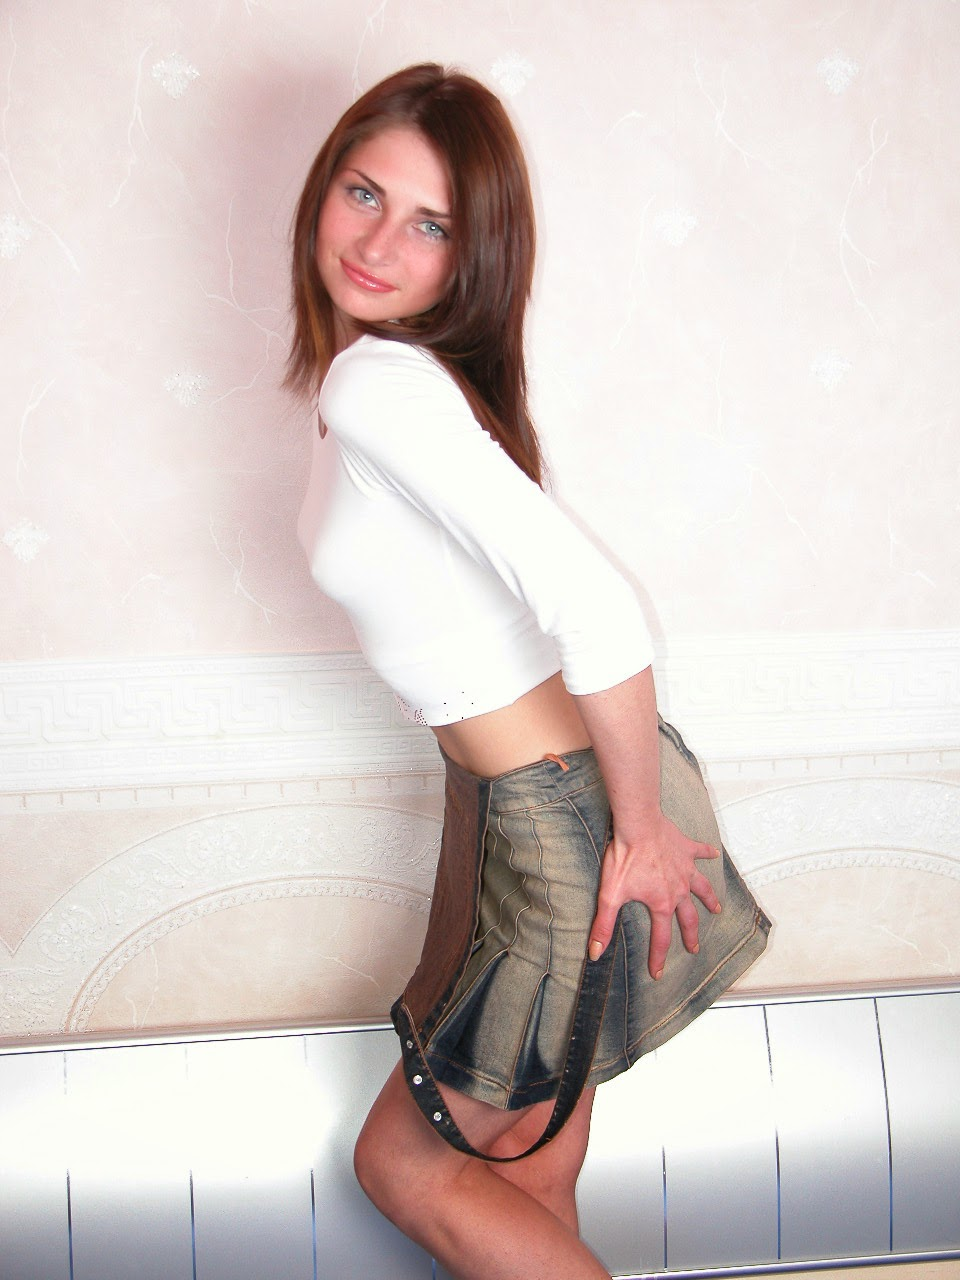 Russian brides russian girls tip And have